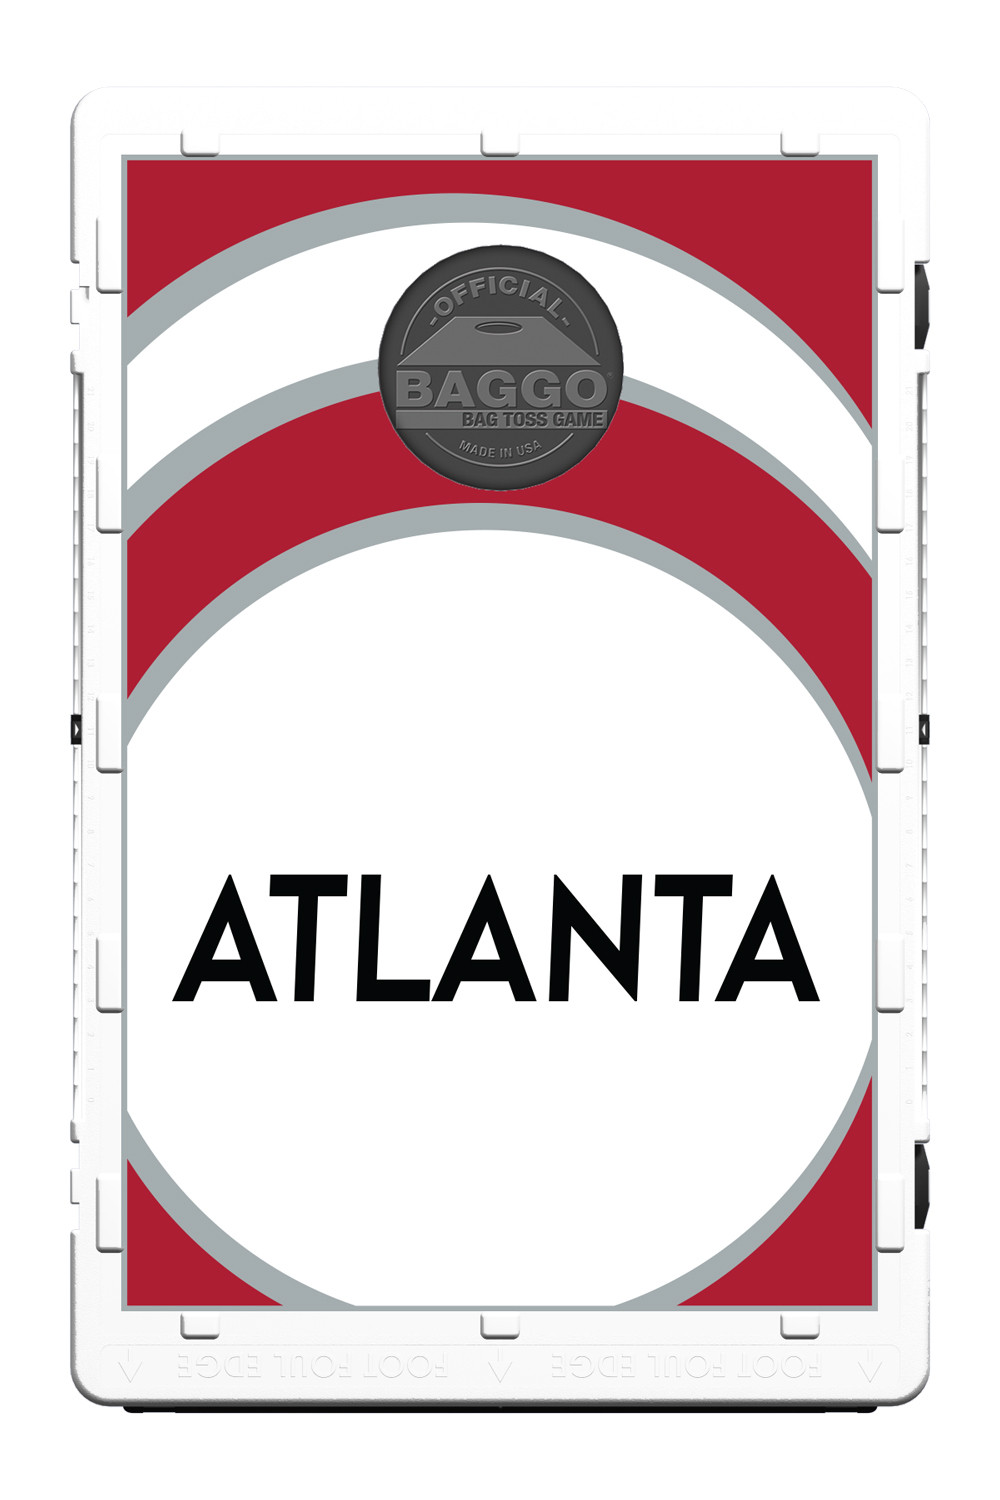 Atlanta Vortex Screens (only) by Baggo